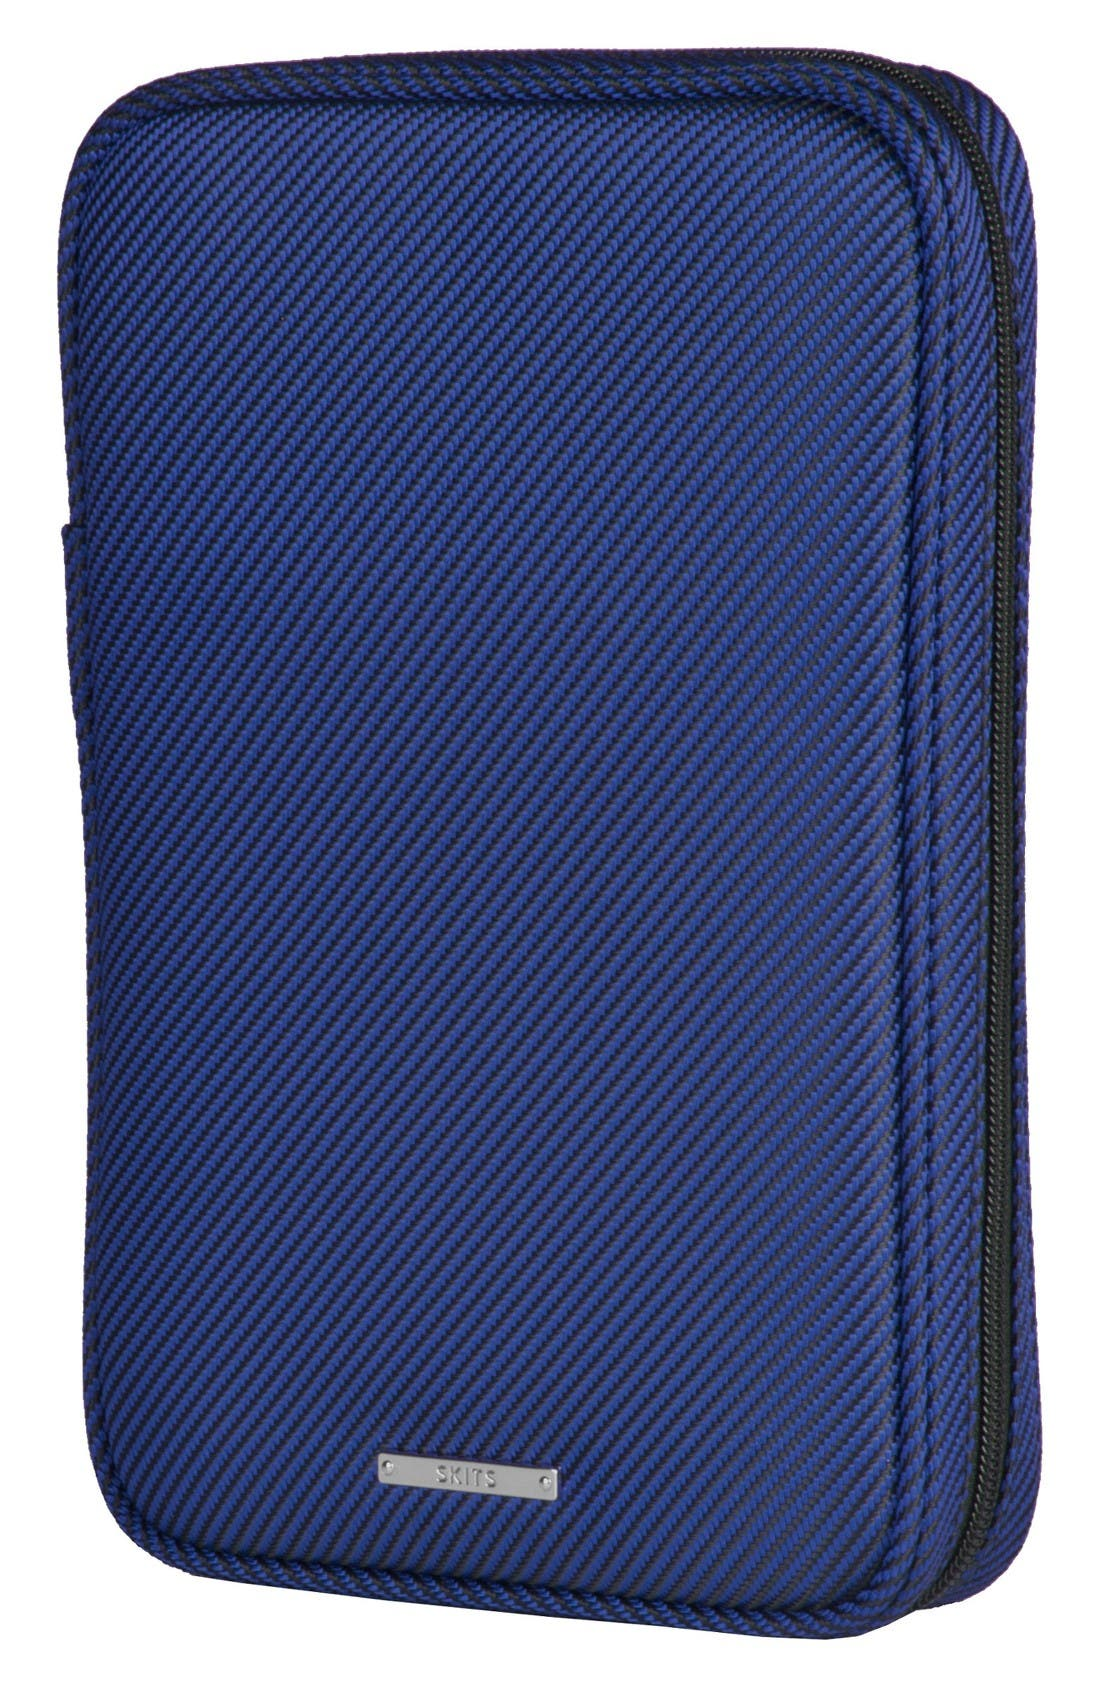 SKITS Oxford Super Brilliant Nylon Tech Case